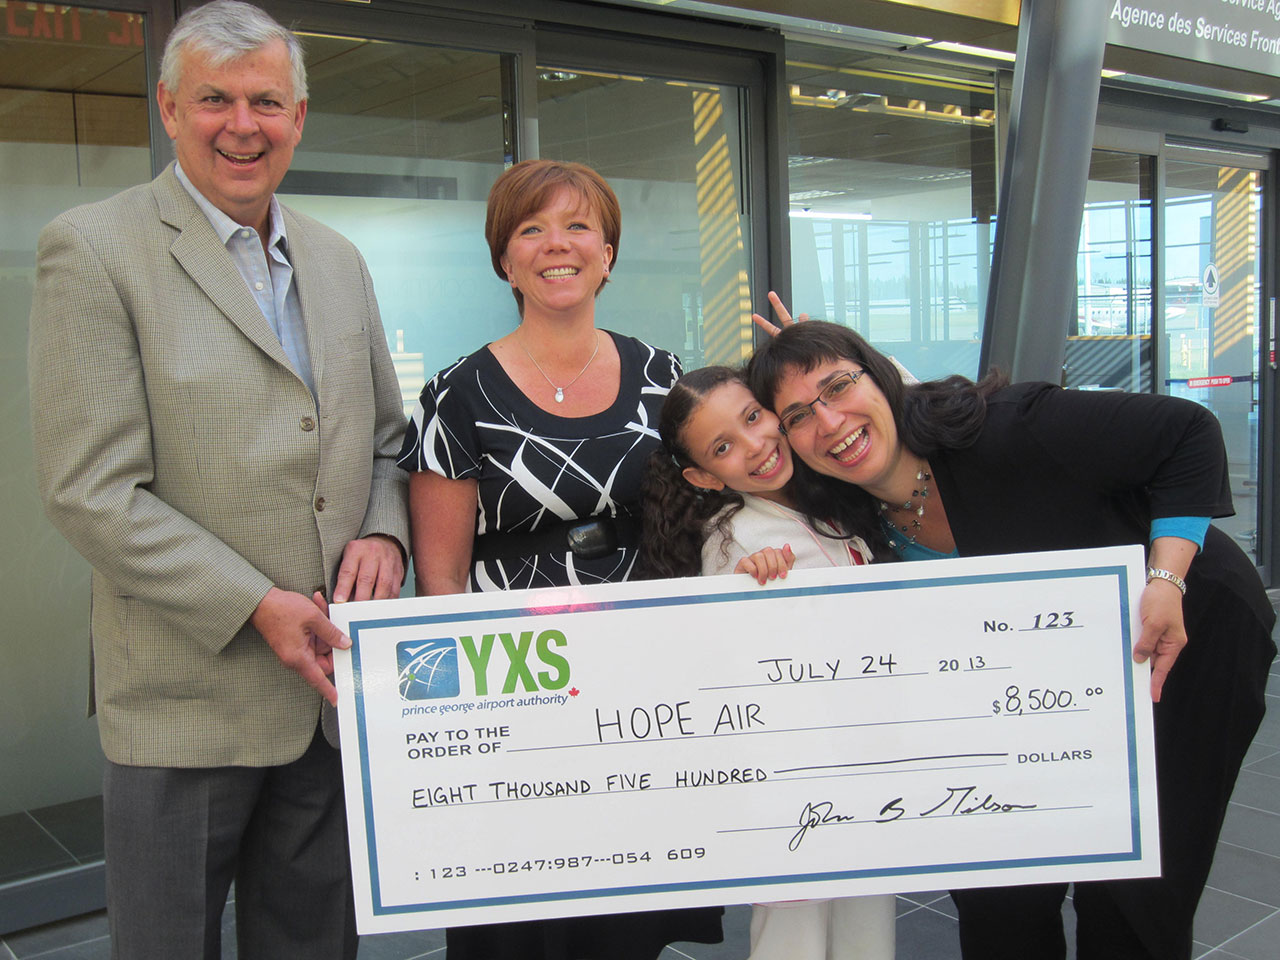 Prince George Airport Authority donation to Hope Air picture